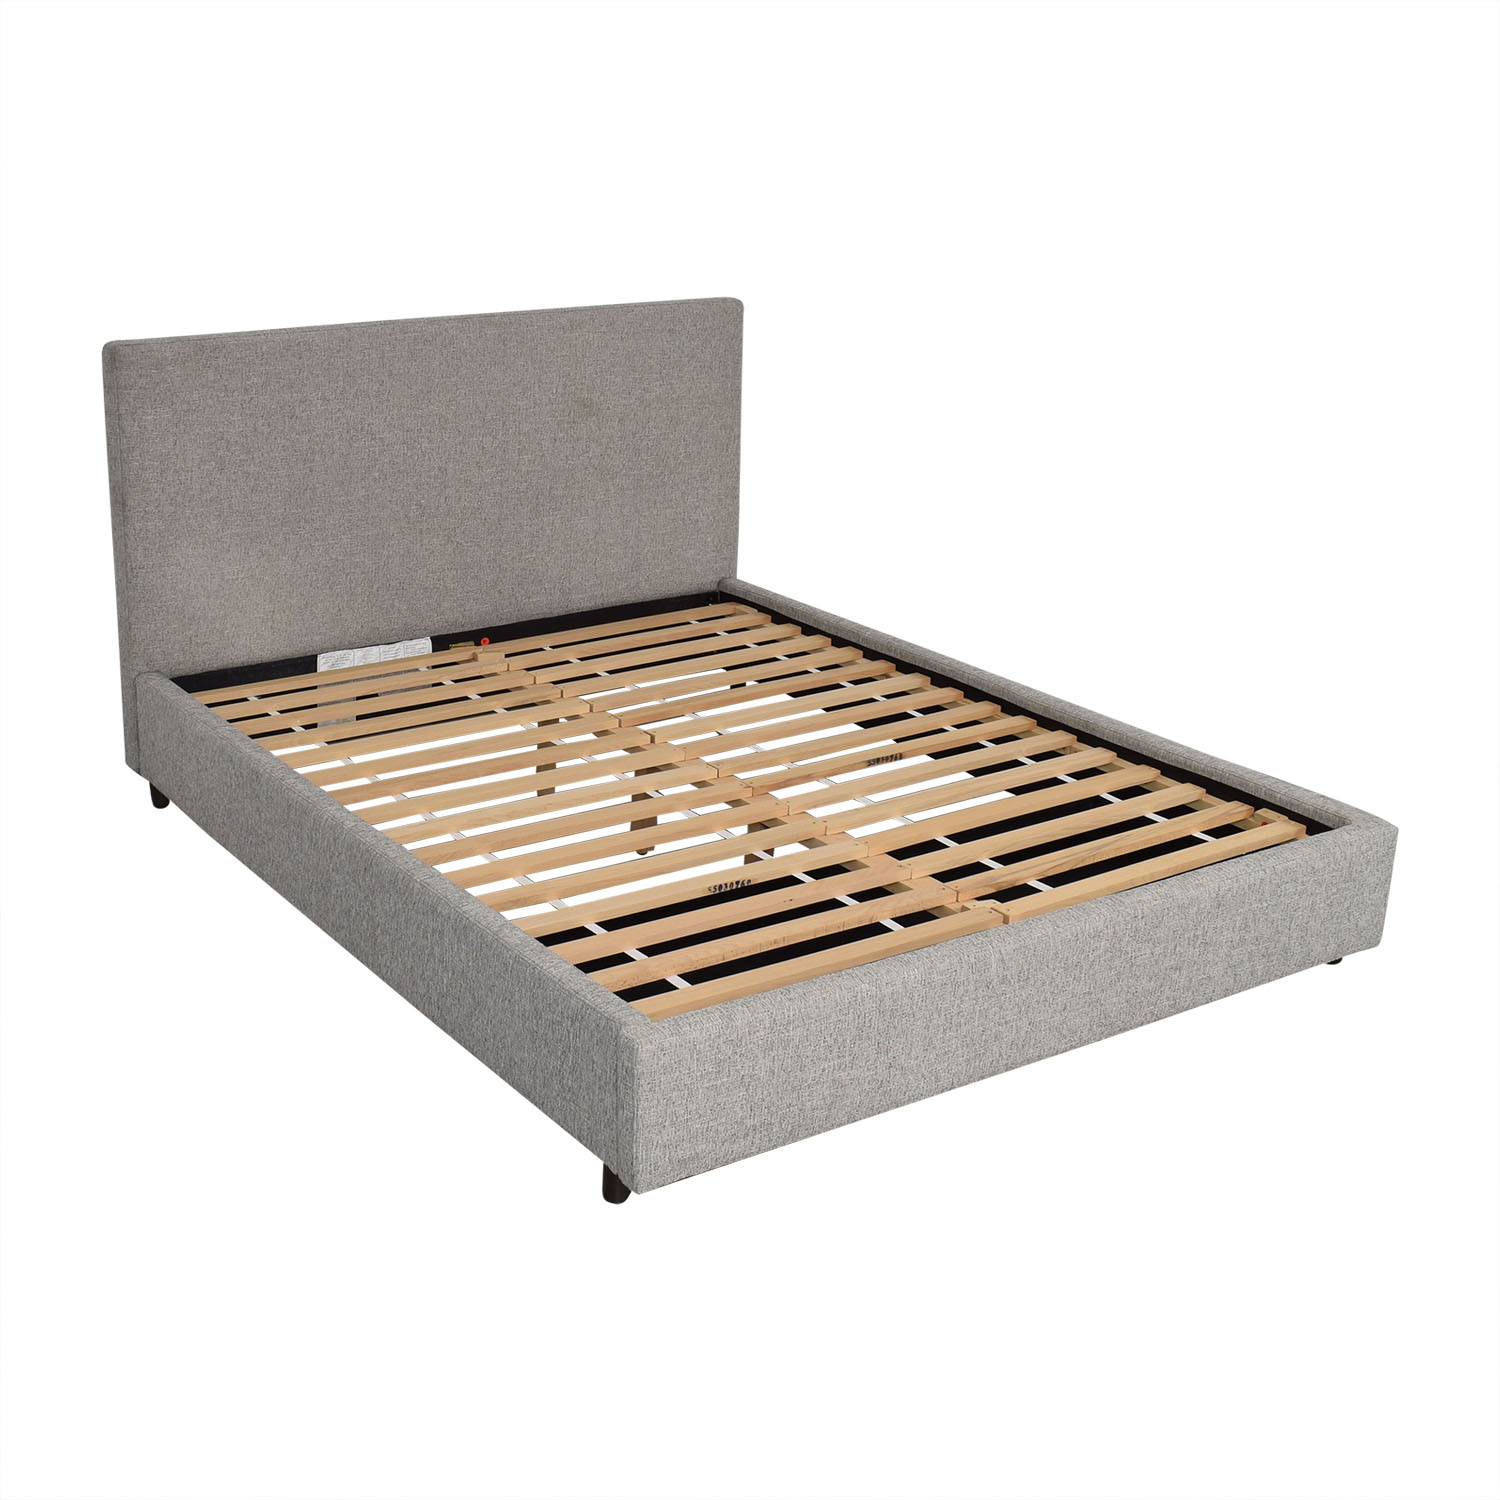 West Elm West Elm Contemporary Upholstered Storage Bed Queen ma